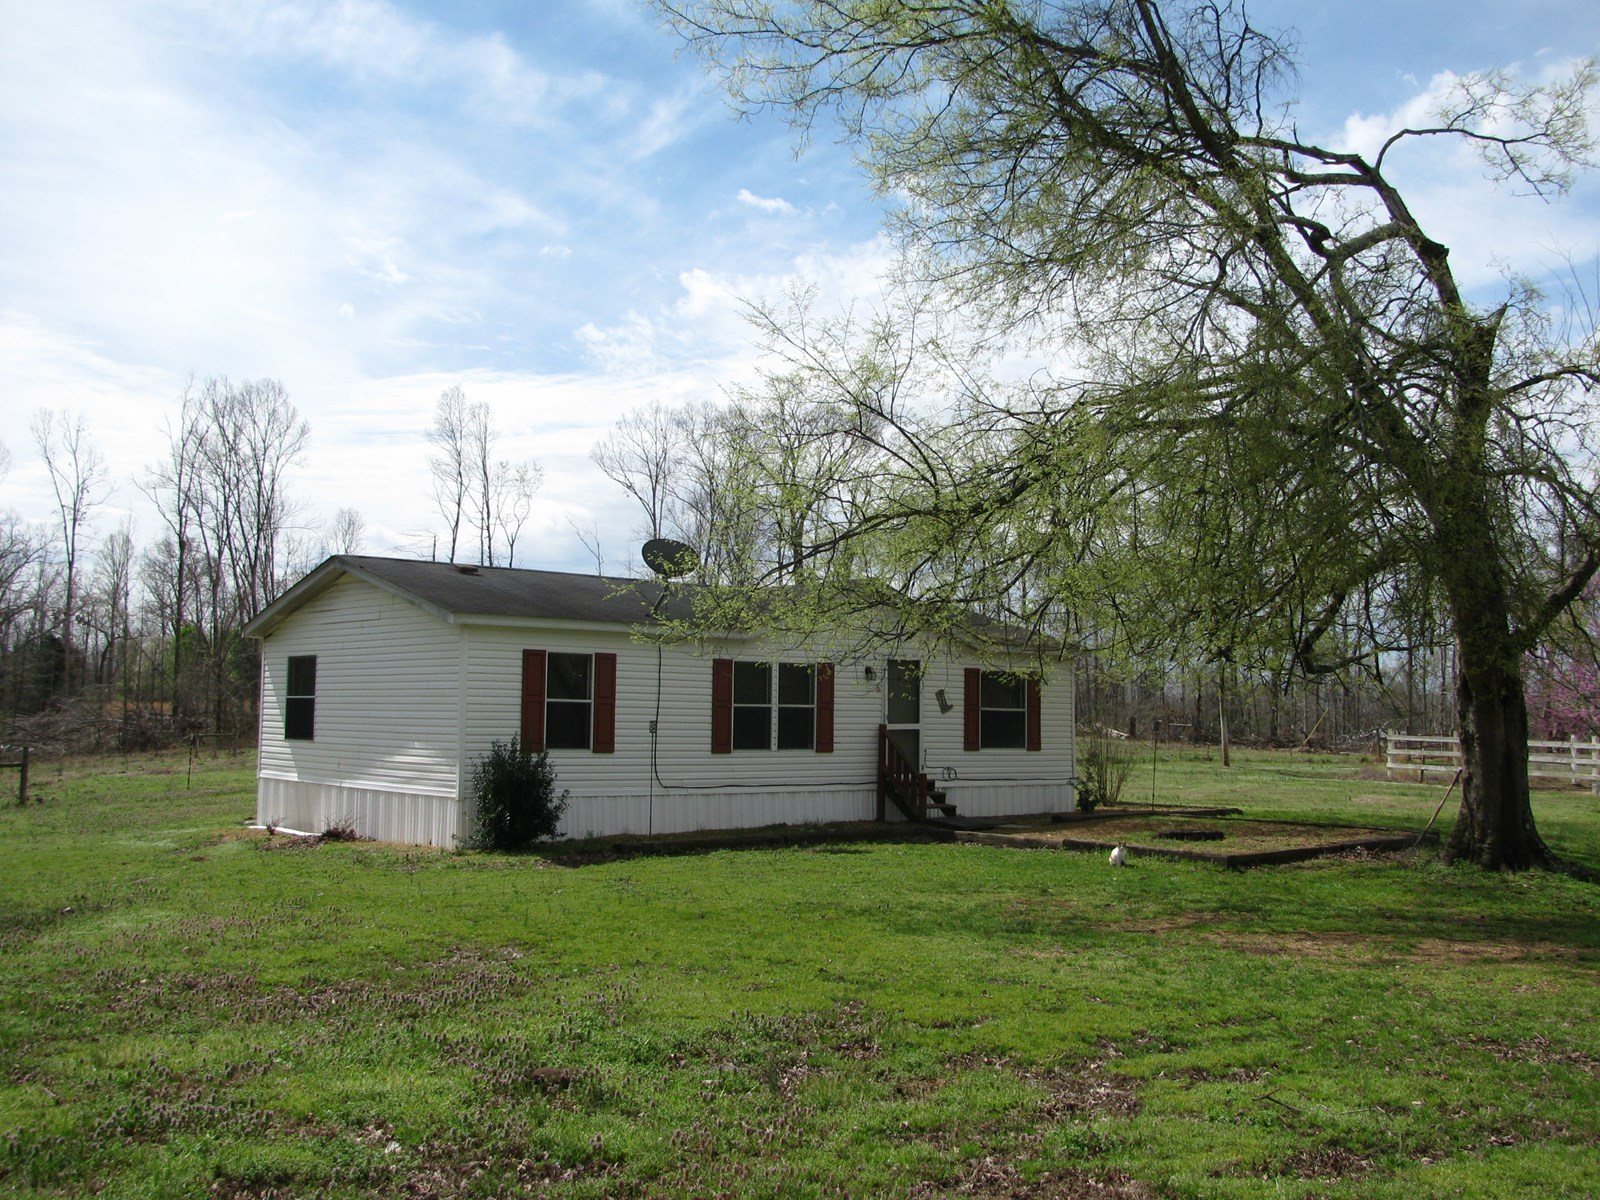 HORSE FARM IN TN FOR SALE, BARN, 9 ACRES, 3 BD/2 BTH HOME